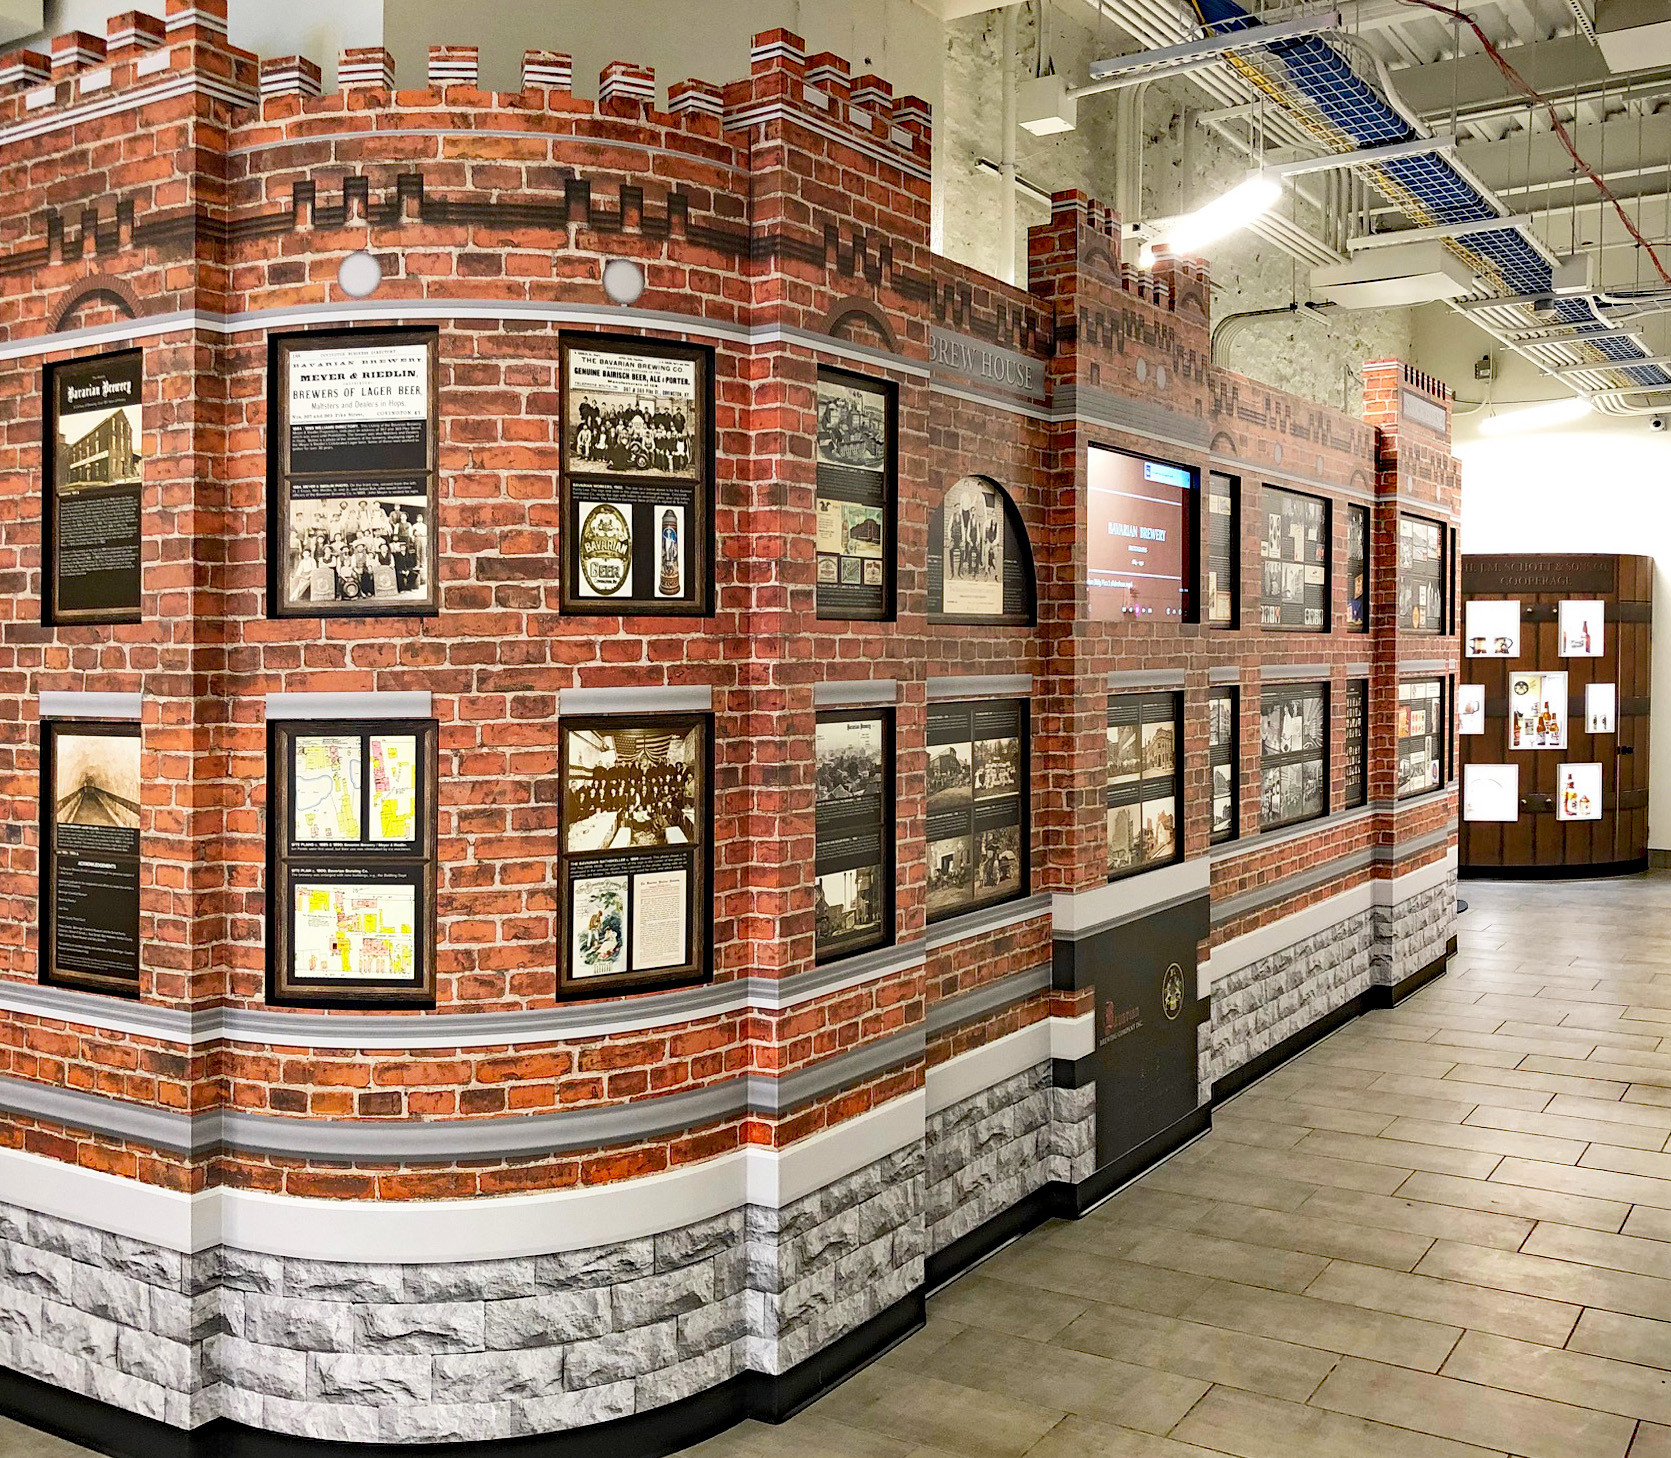 Brewery Wall and Barrel Exhibit